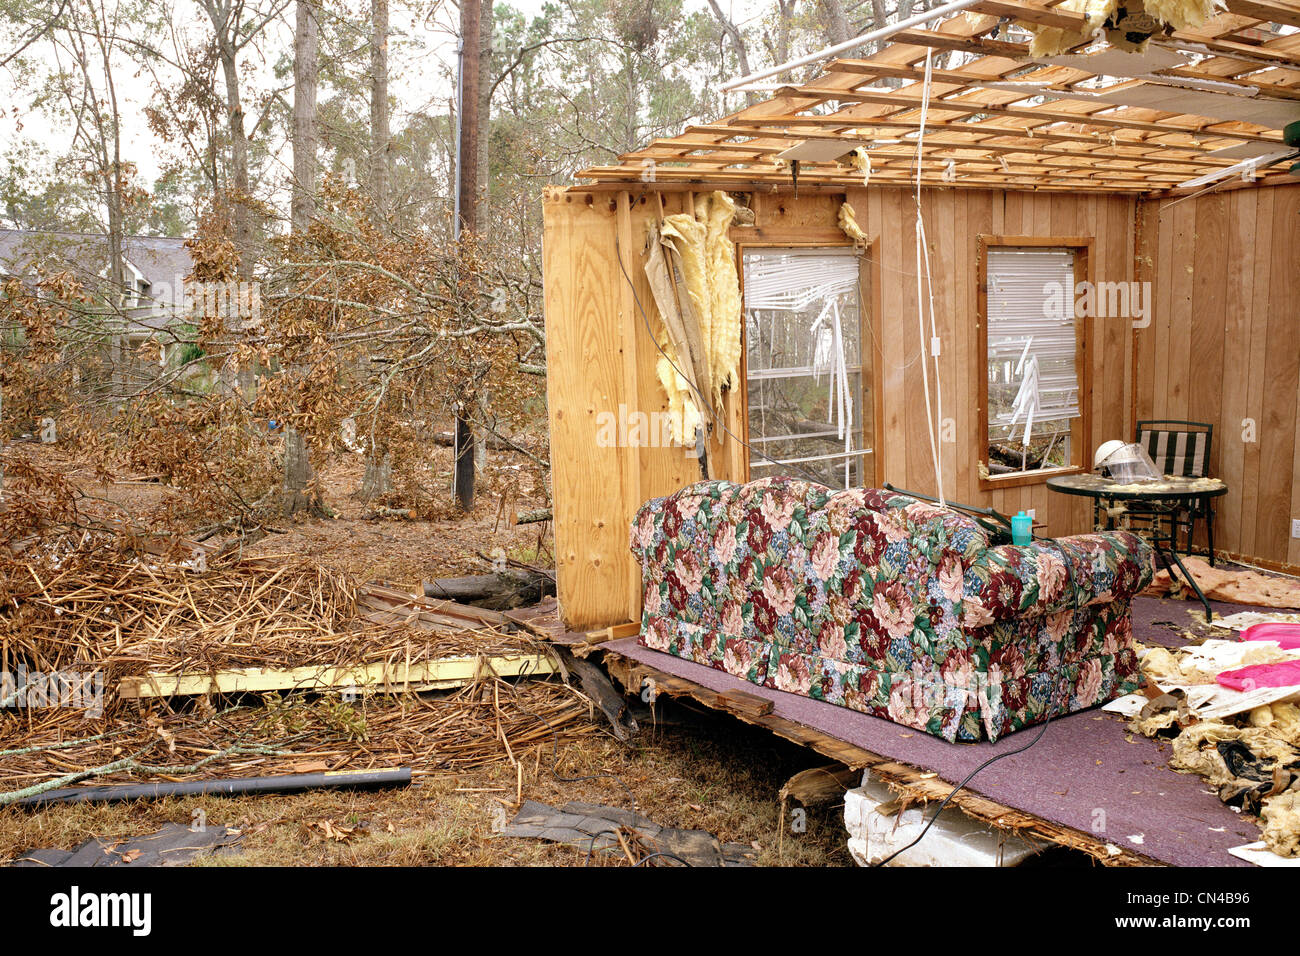 Walls and ceiling of house blown away, exposing living room, aftermath of Hurricane Katrina, Sulphur, USA - Stock Image